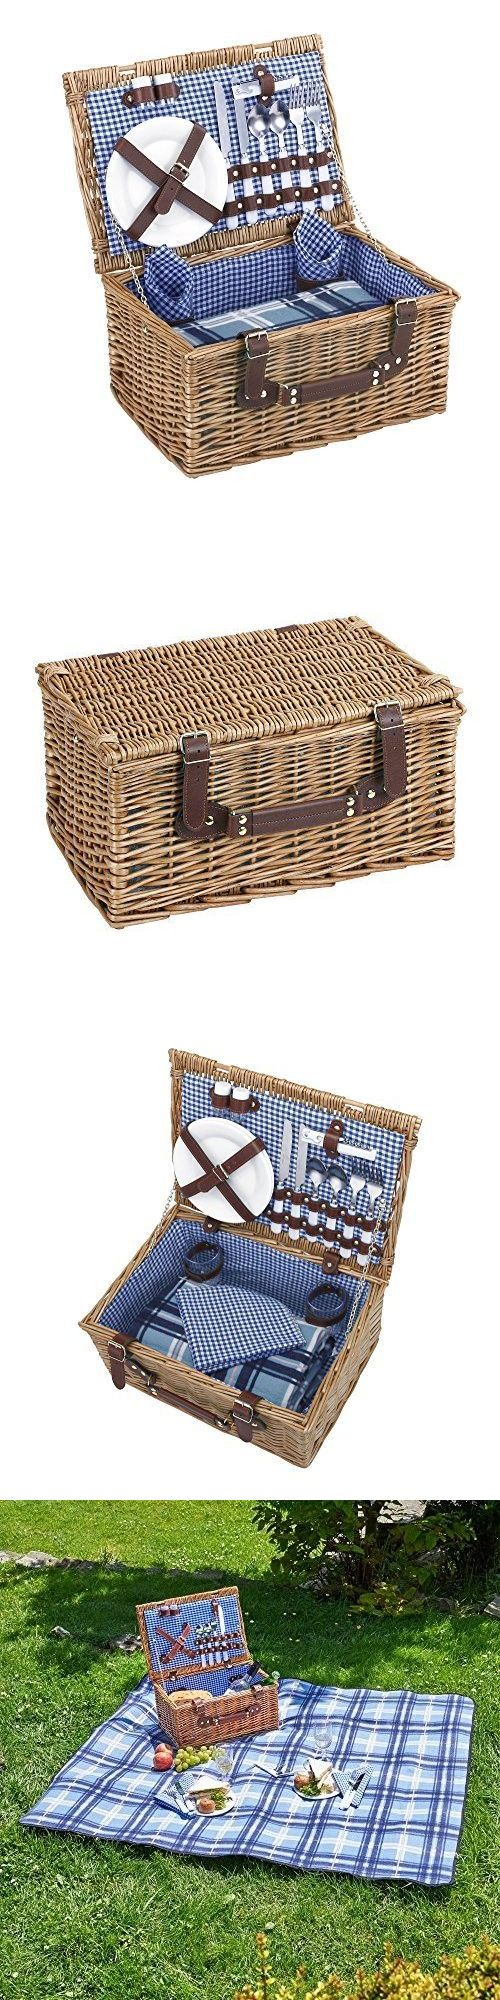 Outdoor Tableware 181383: Picnic Basket For 2 Person Deluxe Traditional Wicker Hamper Box With Accessories -> BUY IT NOW ONLY: $90.72 on eBay!